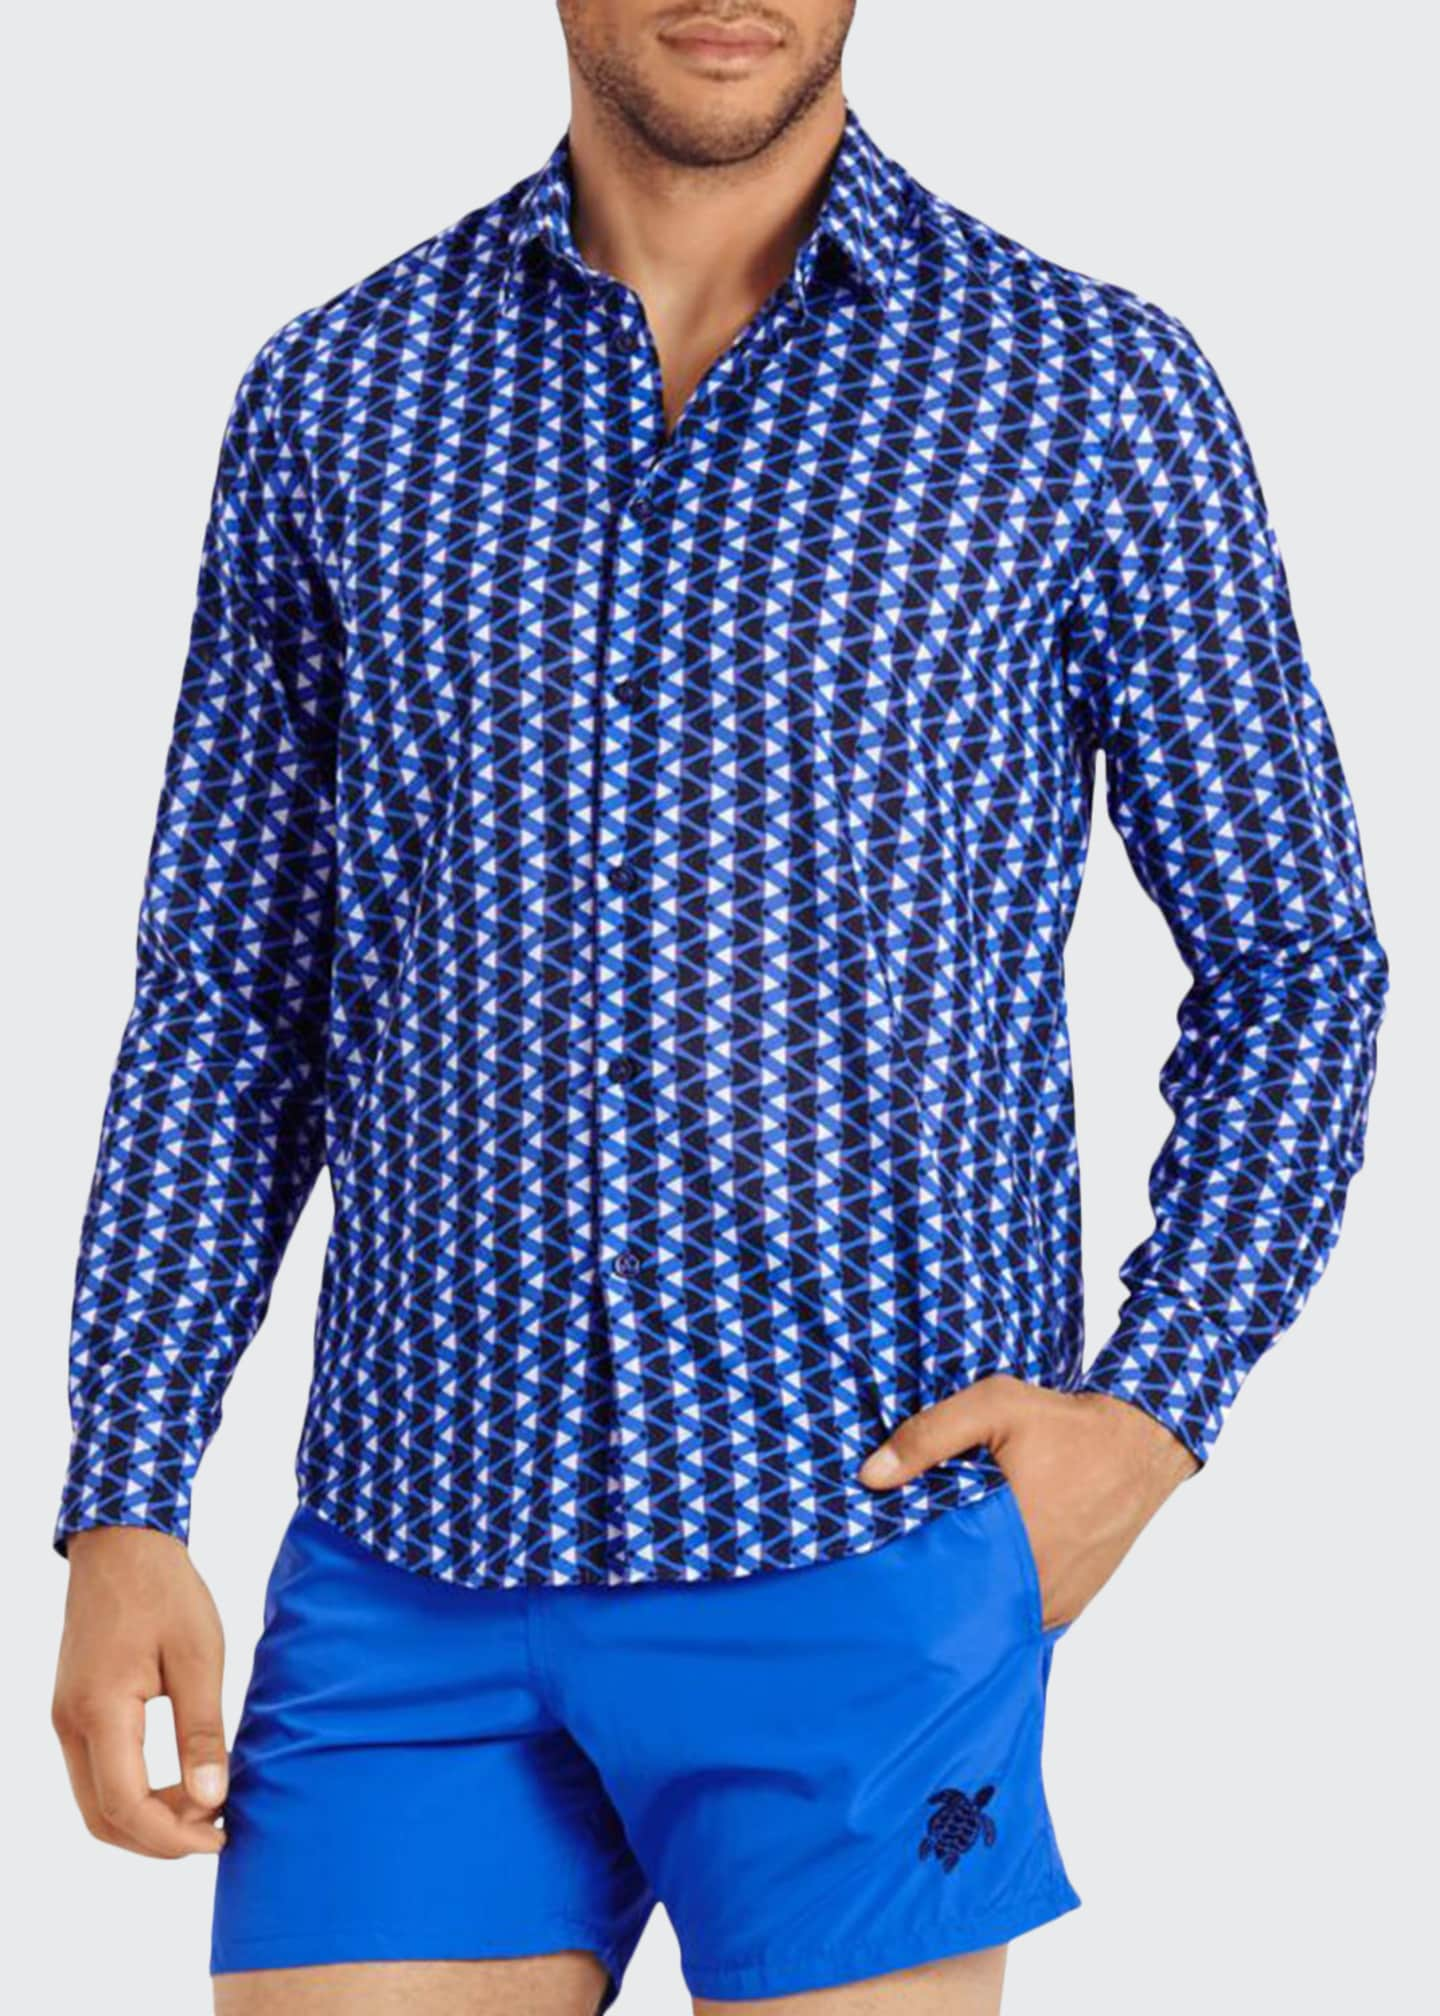 Vilebrequin Men's Re Mi Fa Soles Sport Shirt